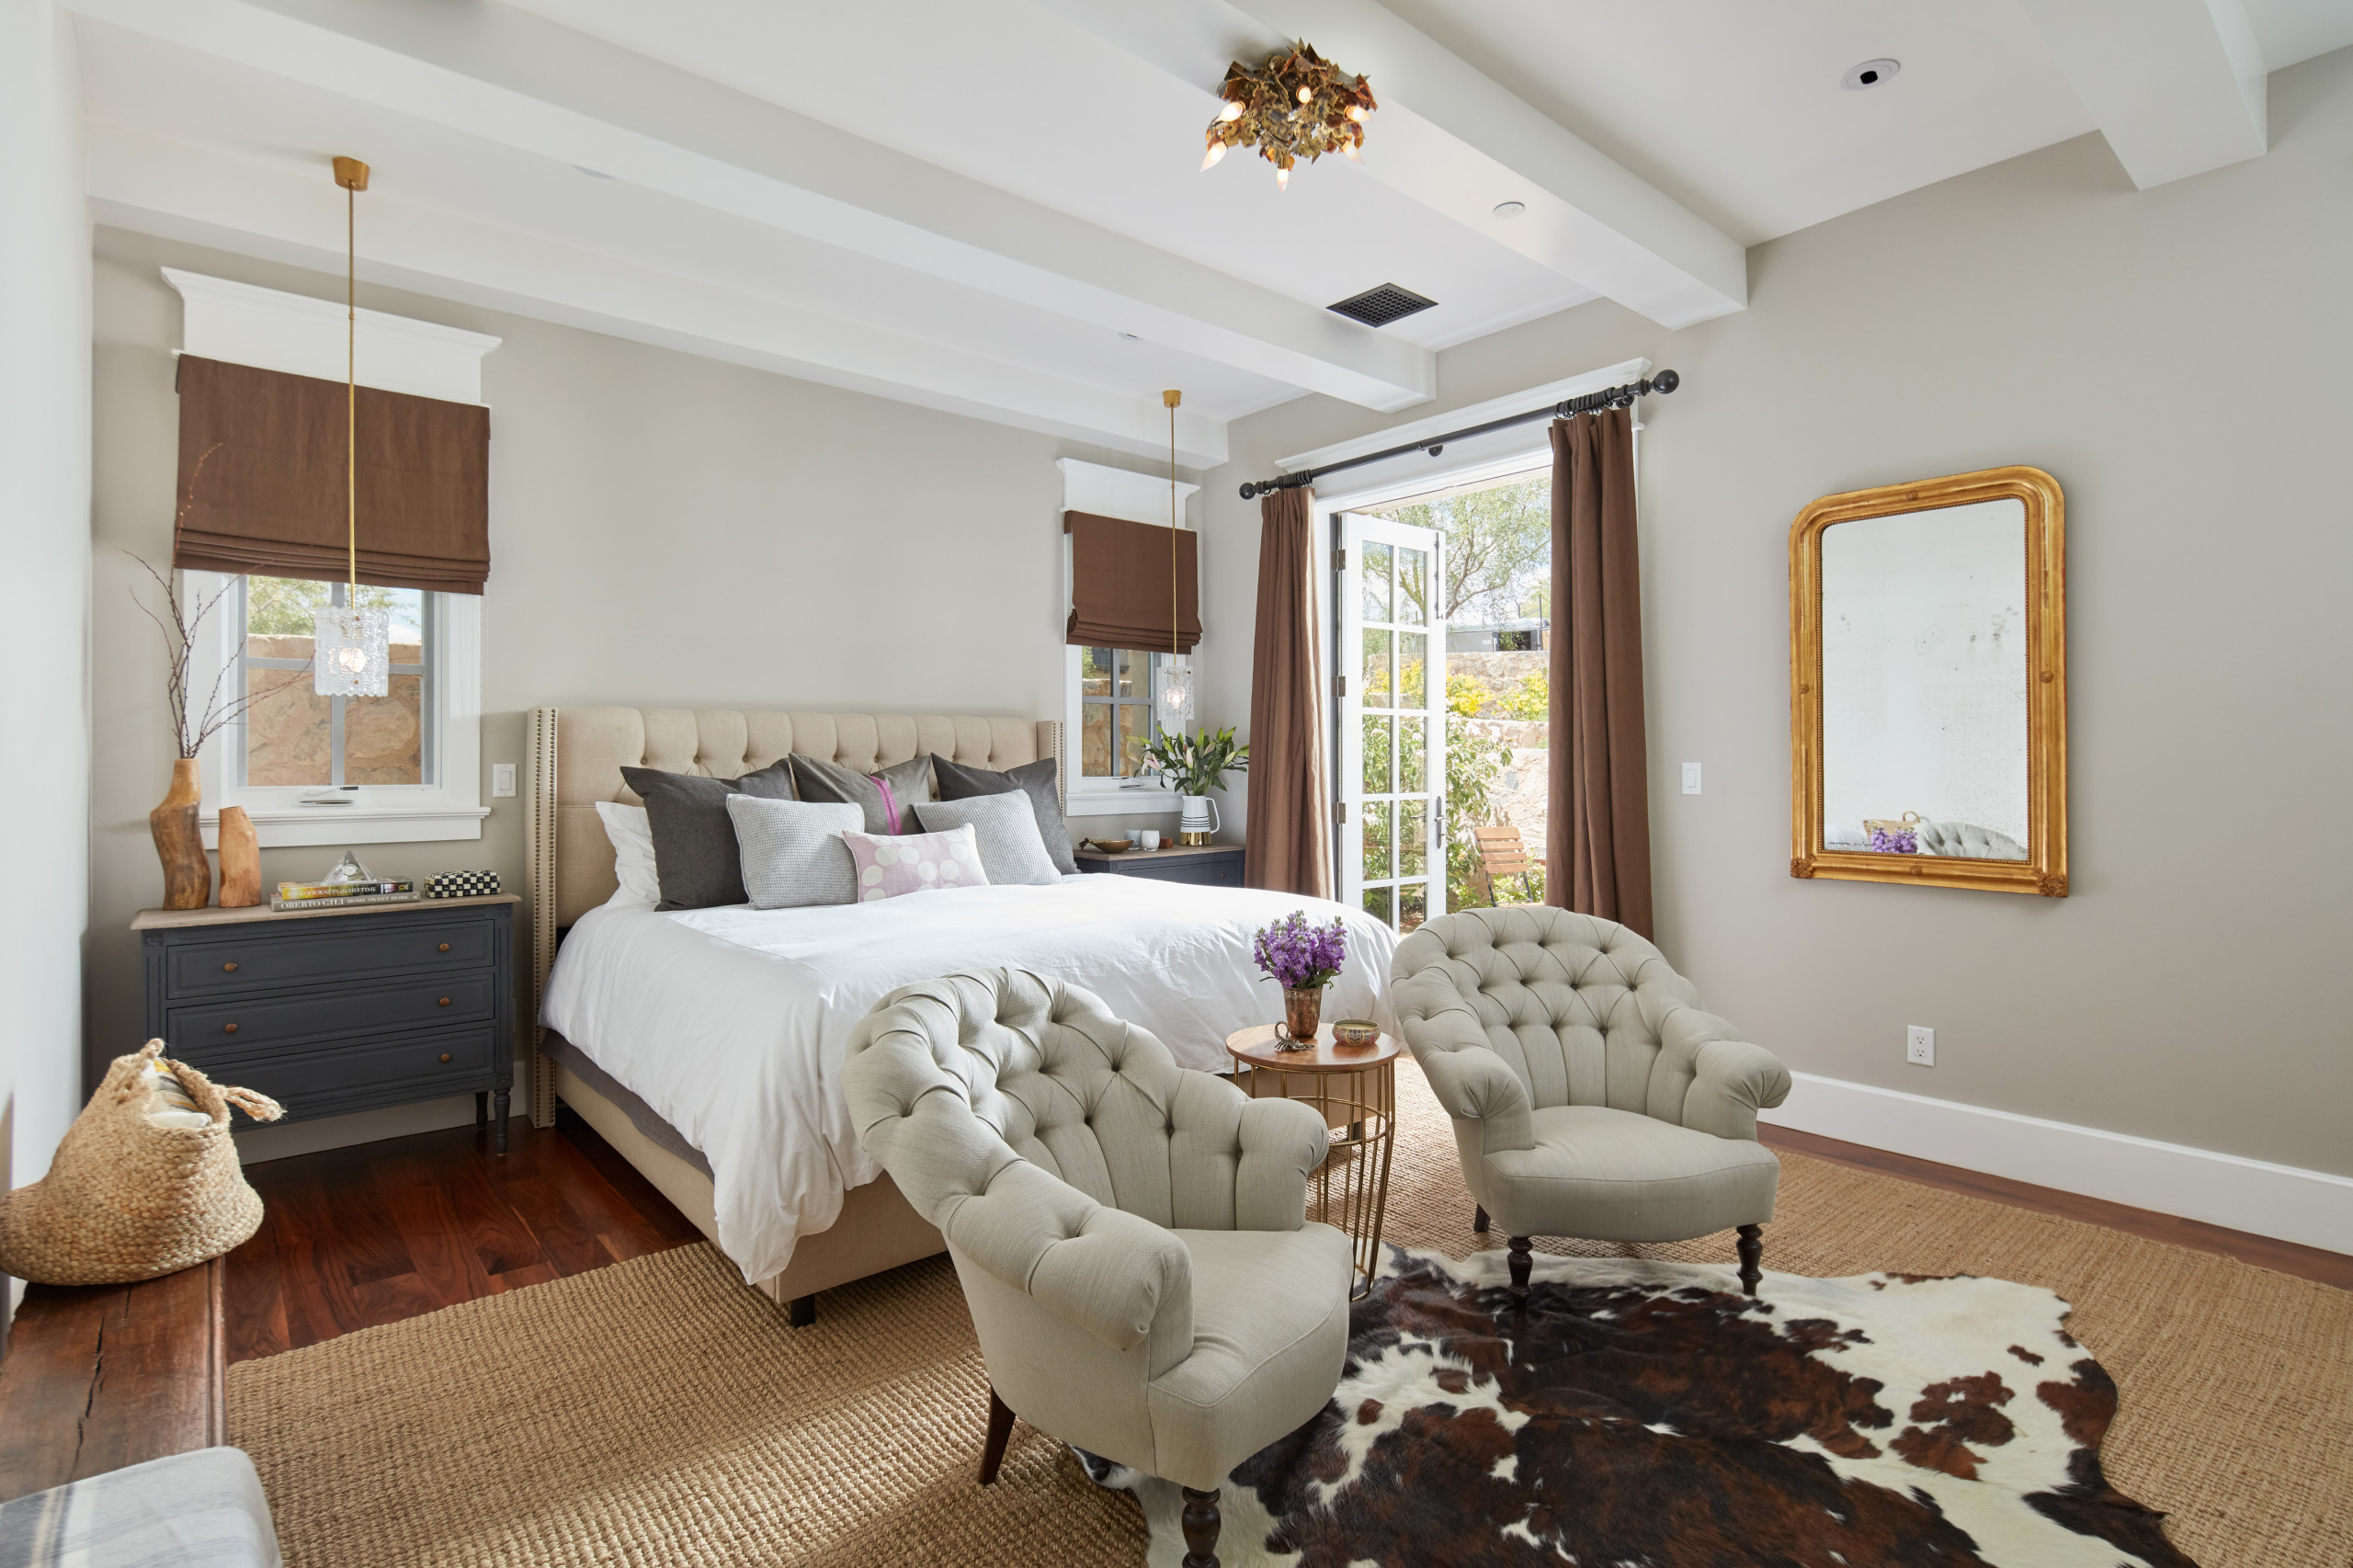 75 Beautiful Farmhouse Bedroom Pictures Ideas December 2020 Houzz